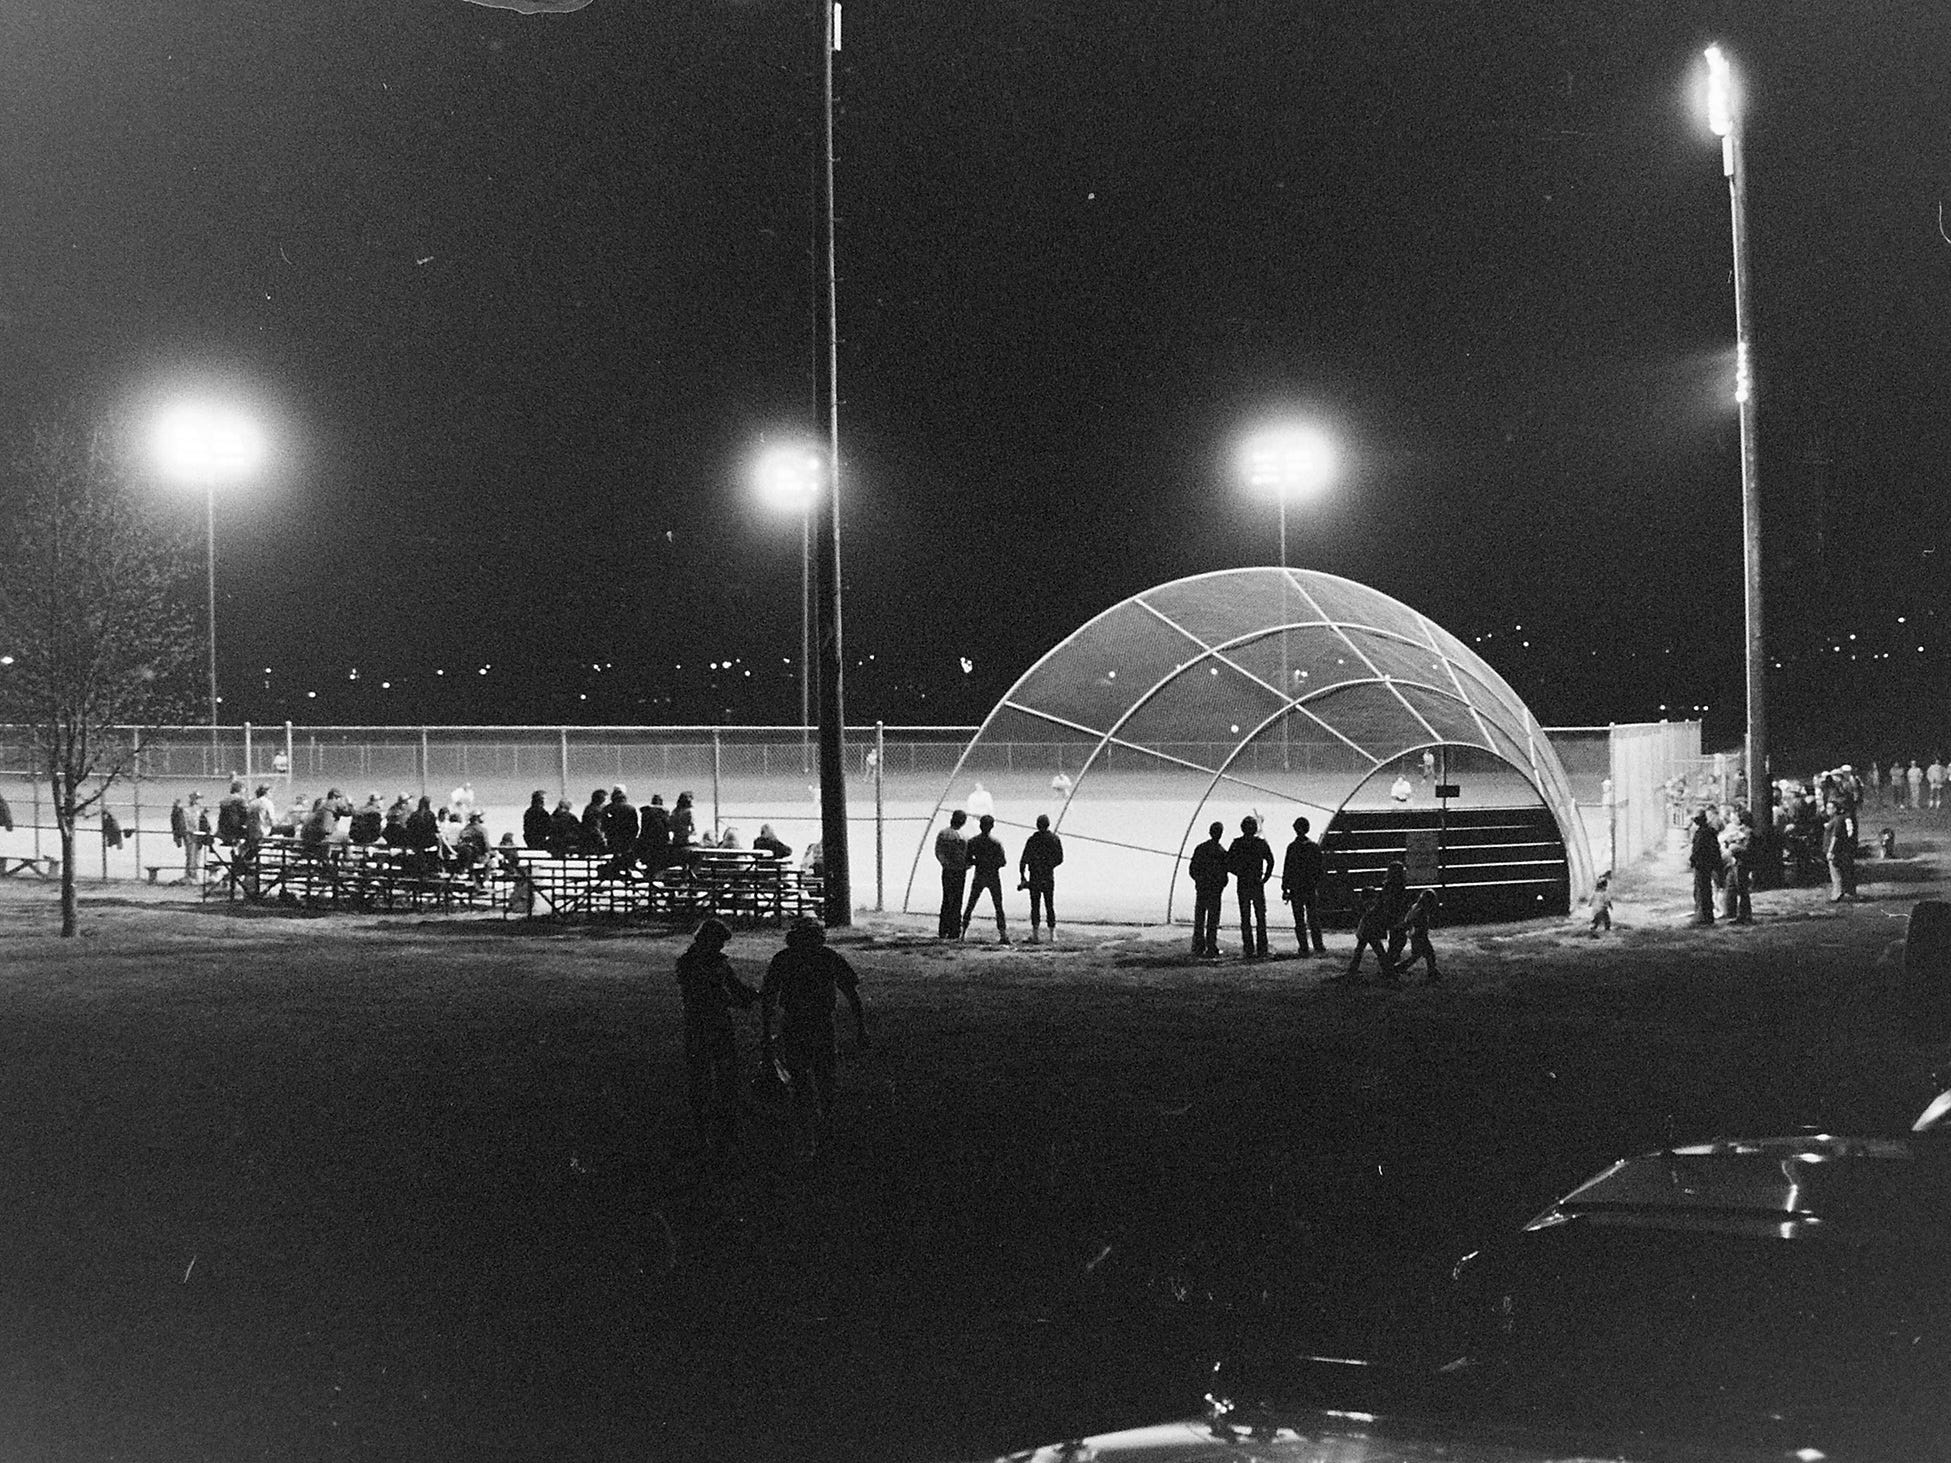 05/10/77